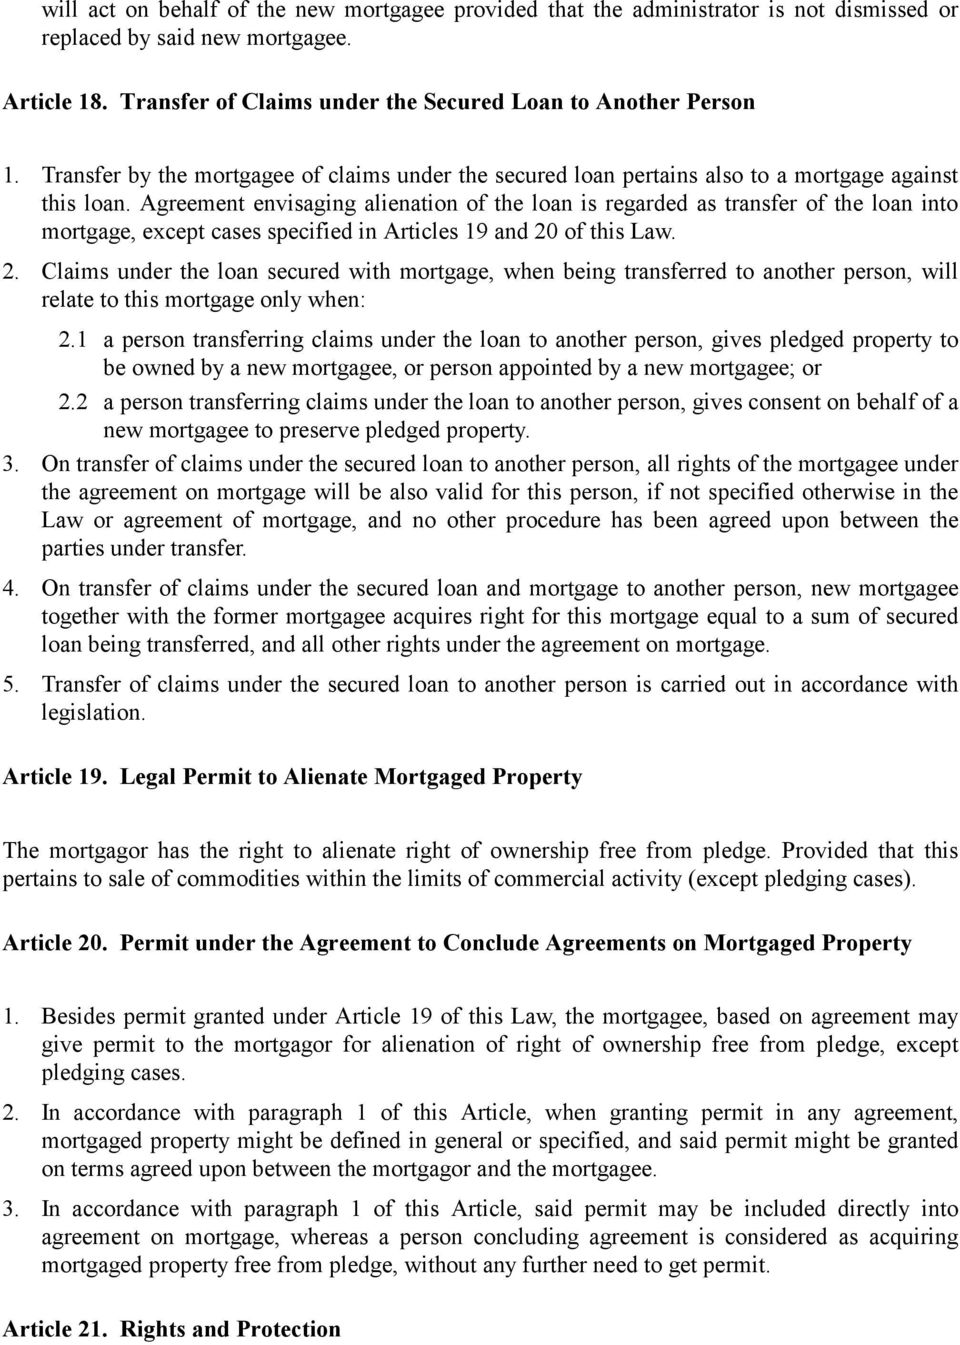 Agreement envisaging alienation of the loan is regarded as transfer of the loan into mortgage, except cases specified in Articles 19 and 20